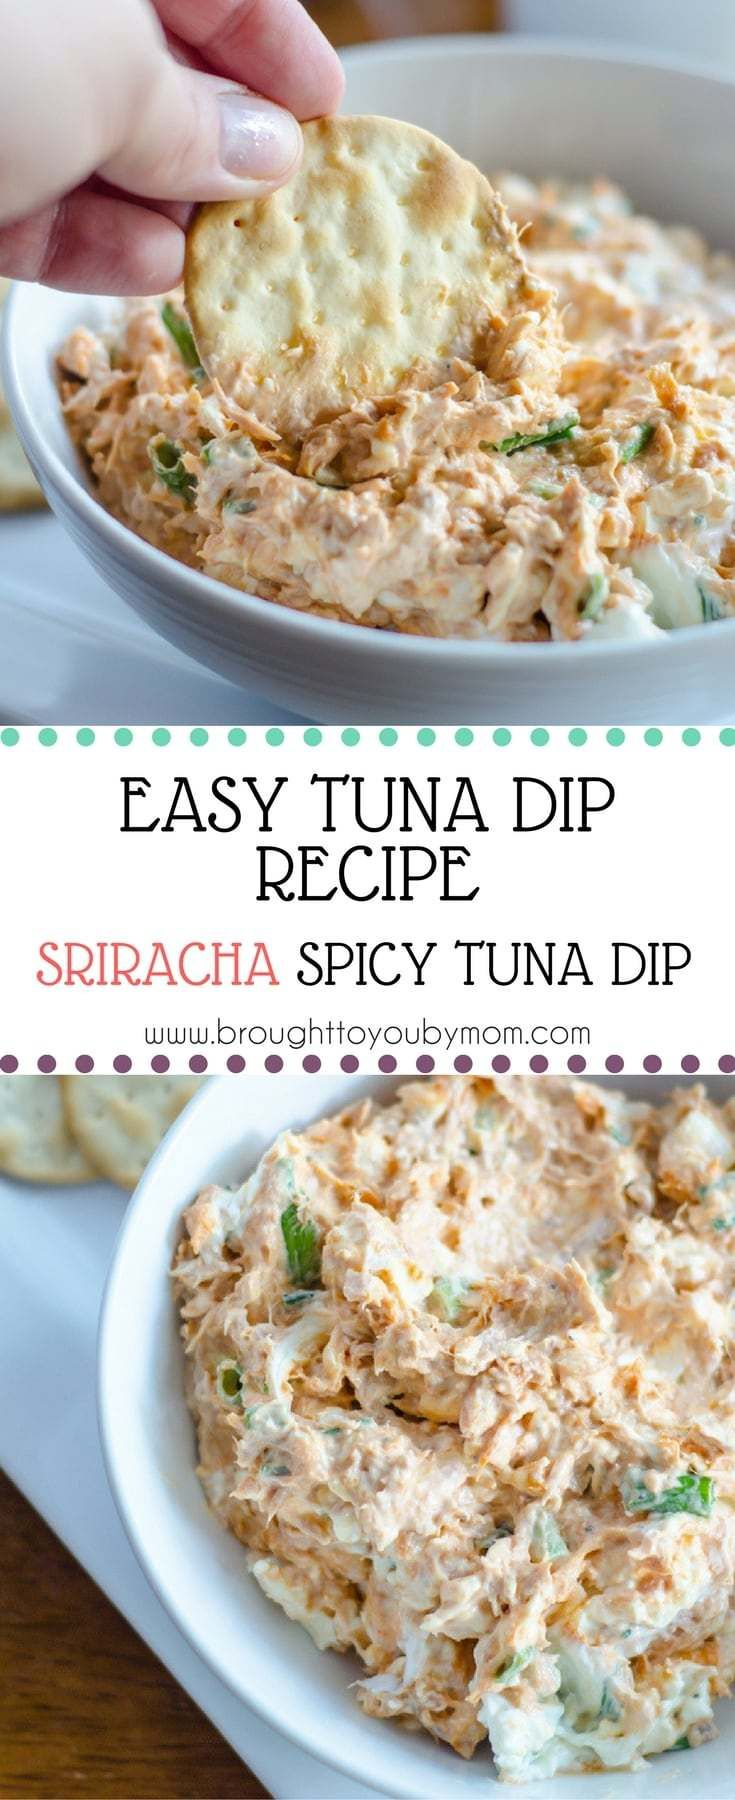 Easy Tuna Dip Recipe with a spicy tuna dip twist with Sriracha. Using Tuna Creations® BOLD Sriracha from StarKist makes this an easy tuna dip recipe to love. (AD)